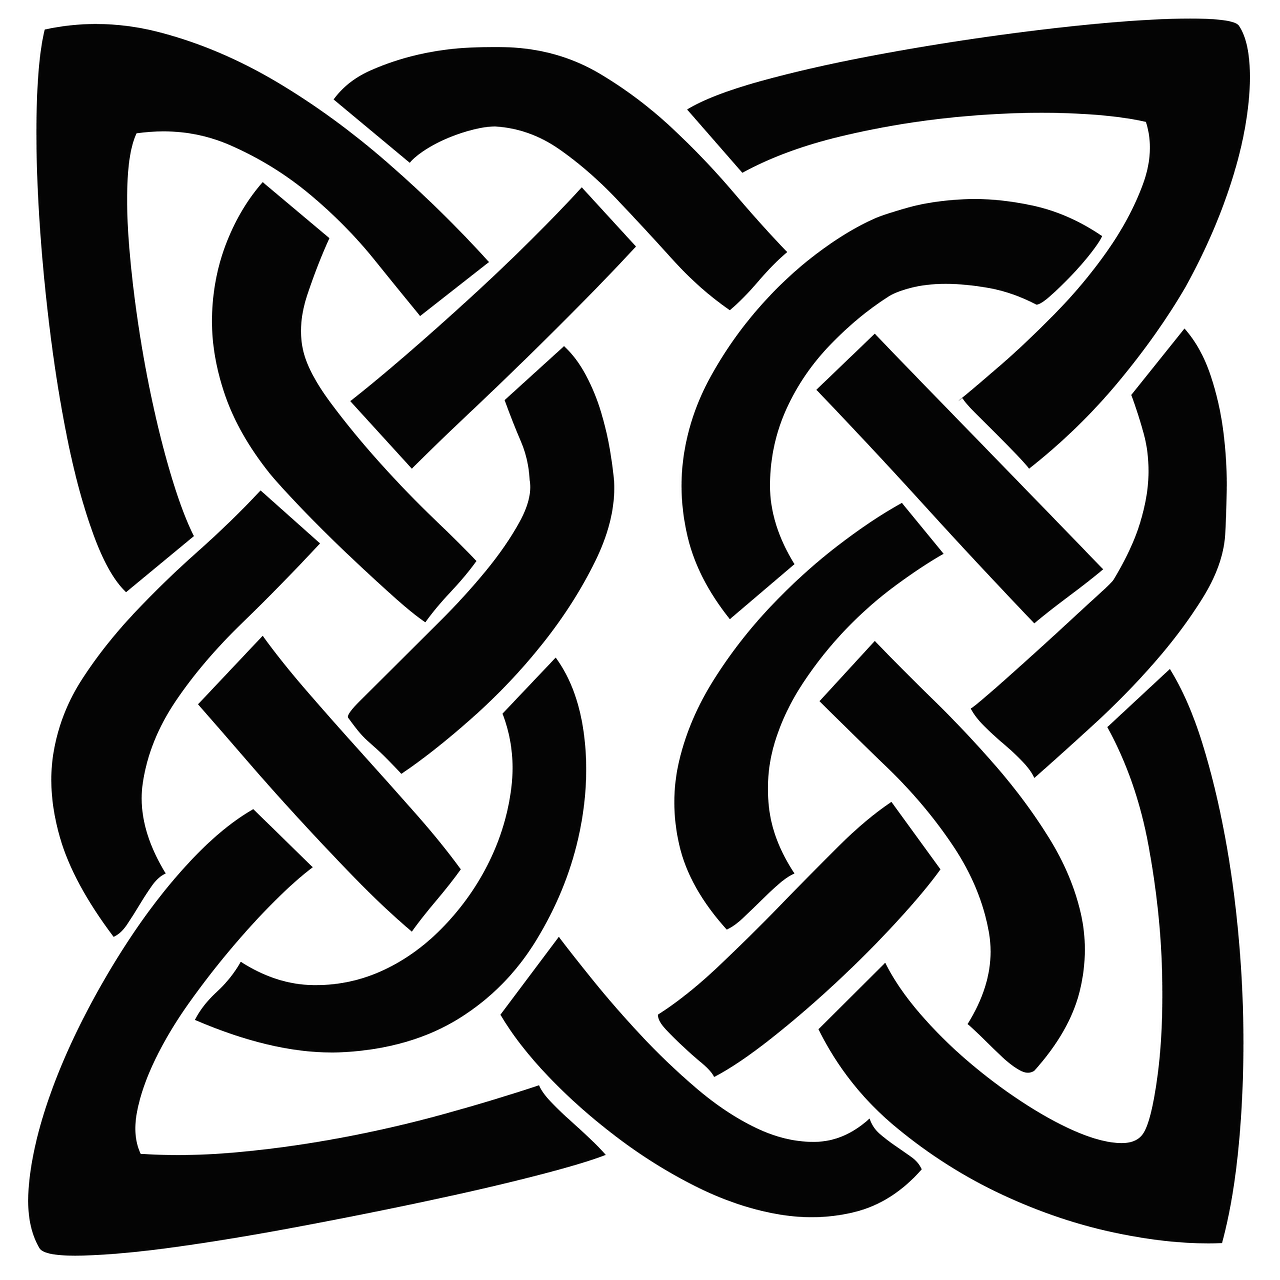 witch knot symbol